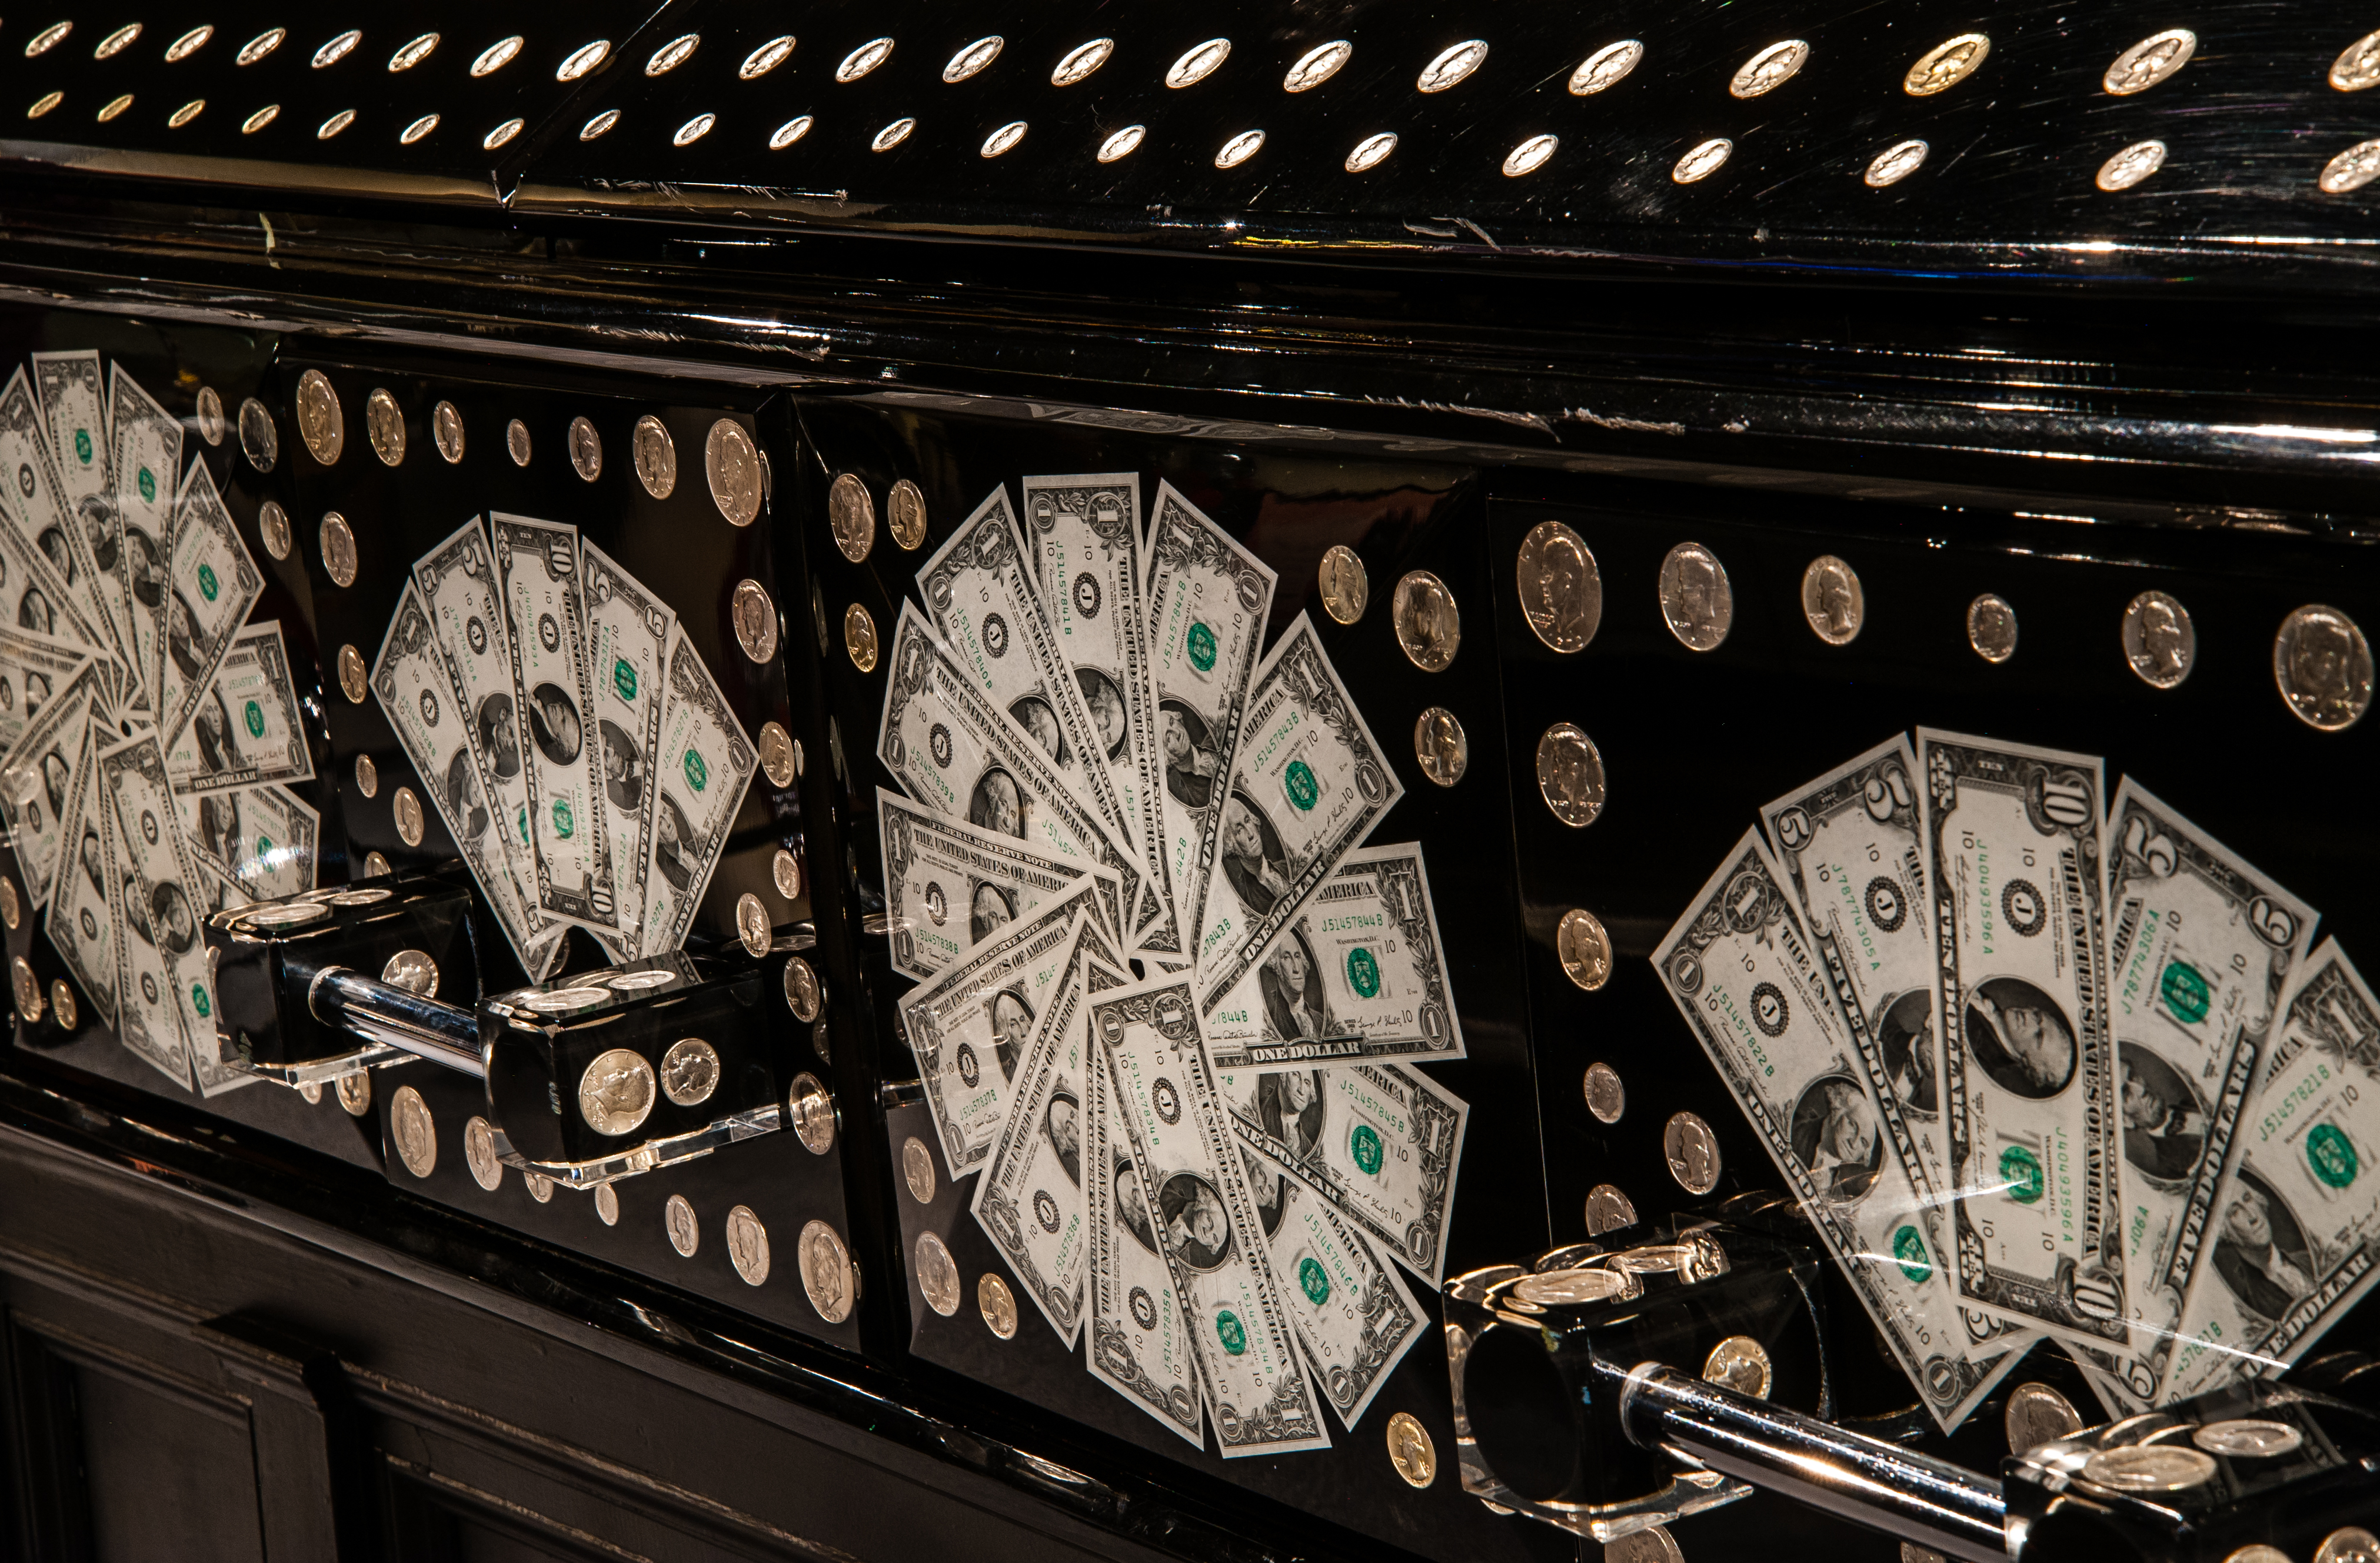 One of the more unique caskets on display is this one embedded with money. Image courtesy of the National Museum of Funeral History.